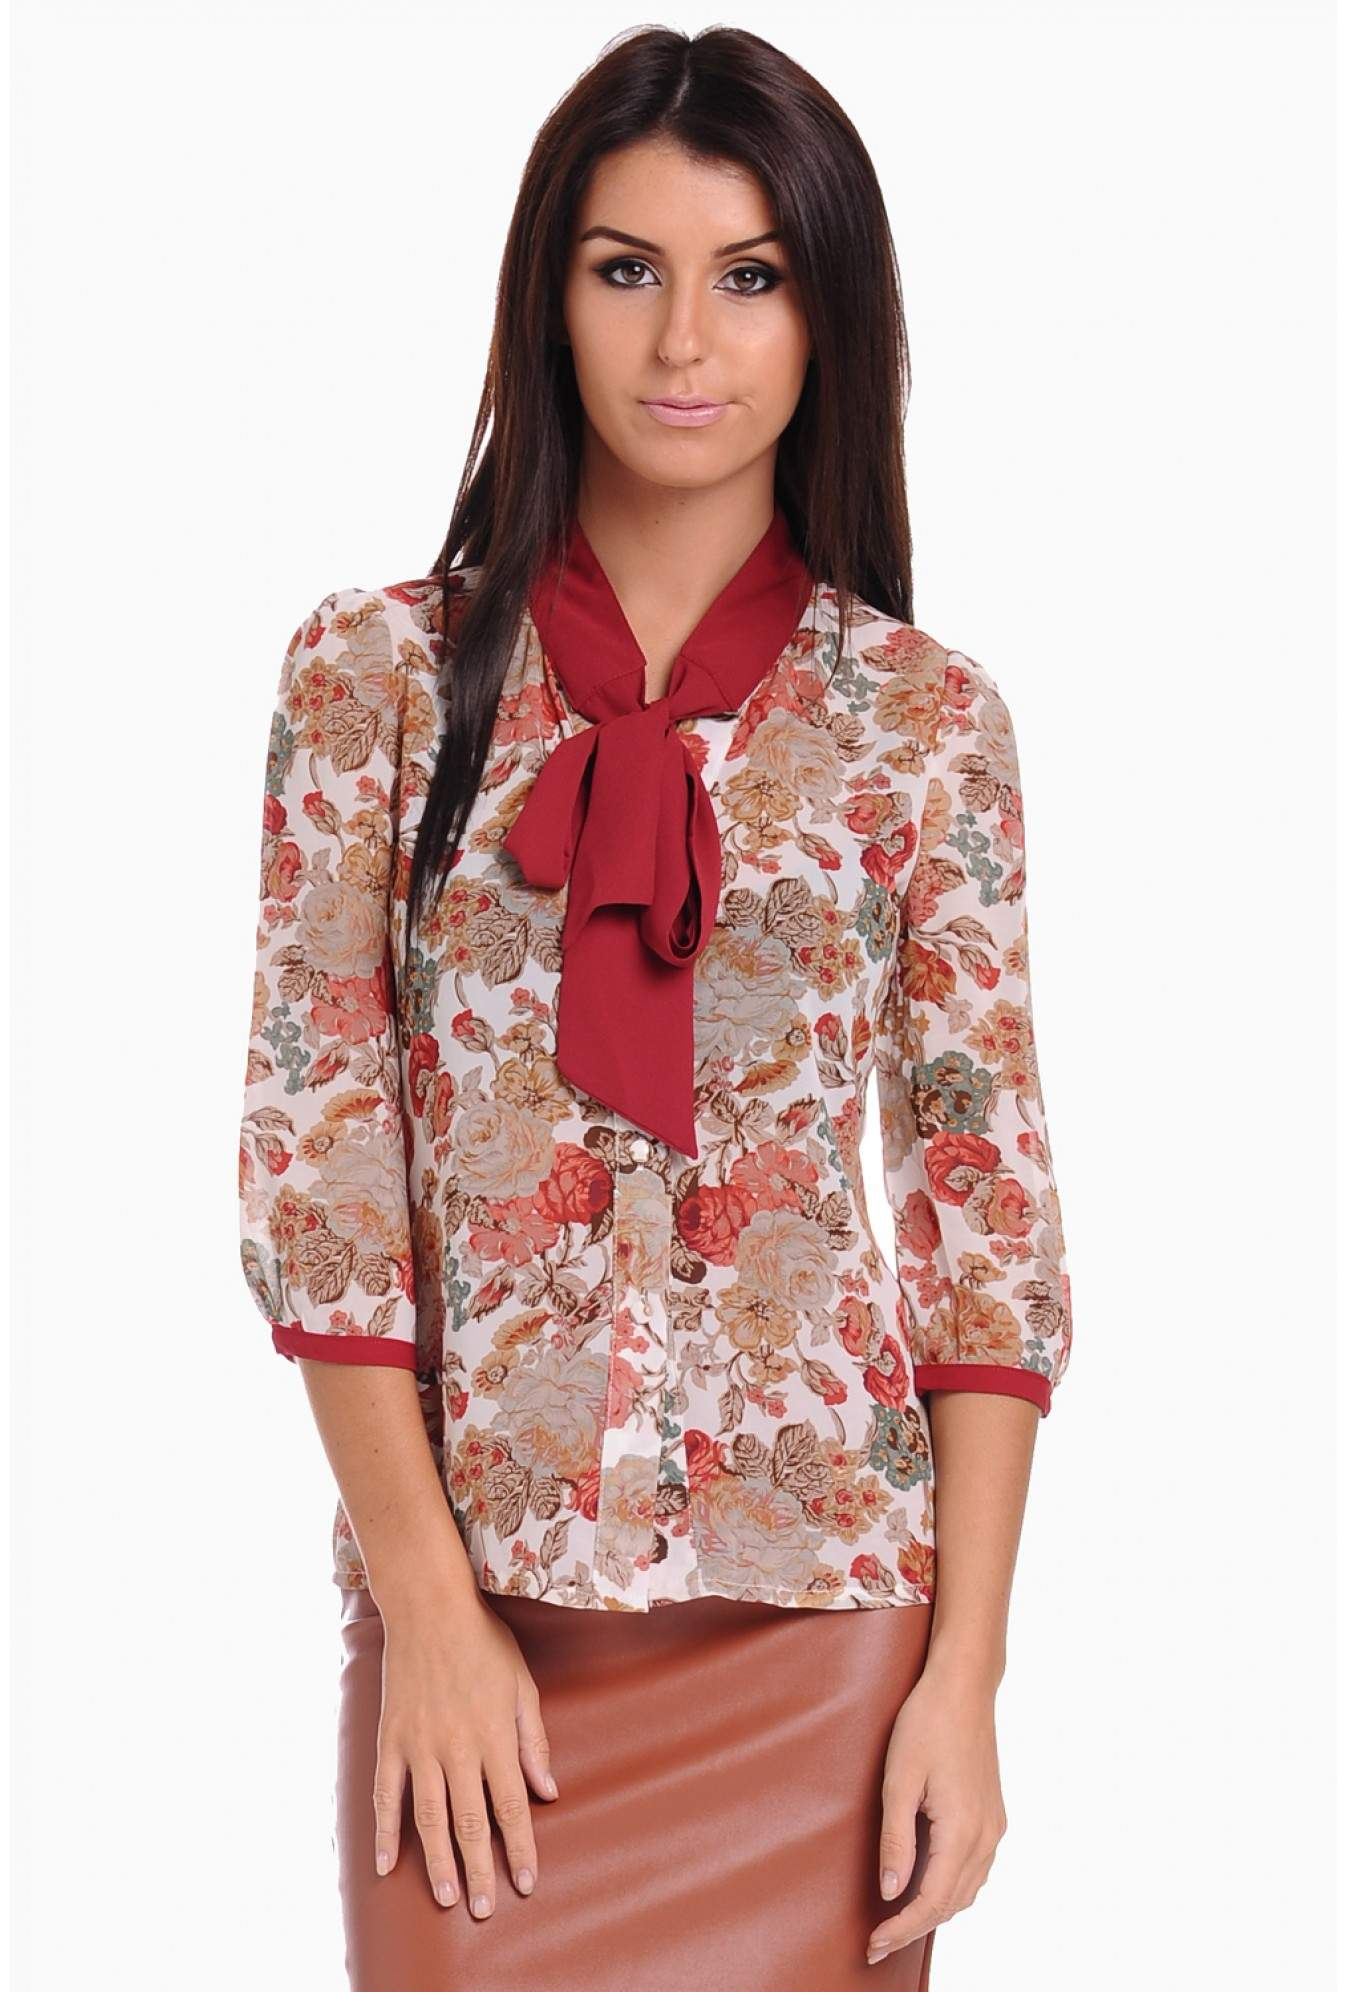 c07101ded6 More Views. Maisy Bow Neck Floral Blouse